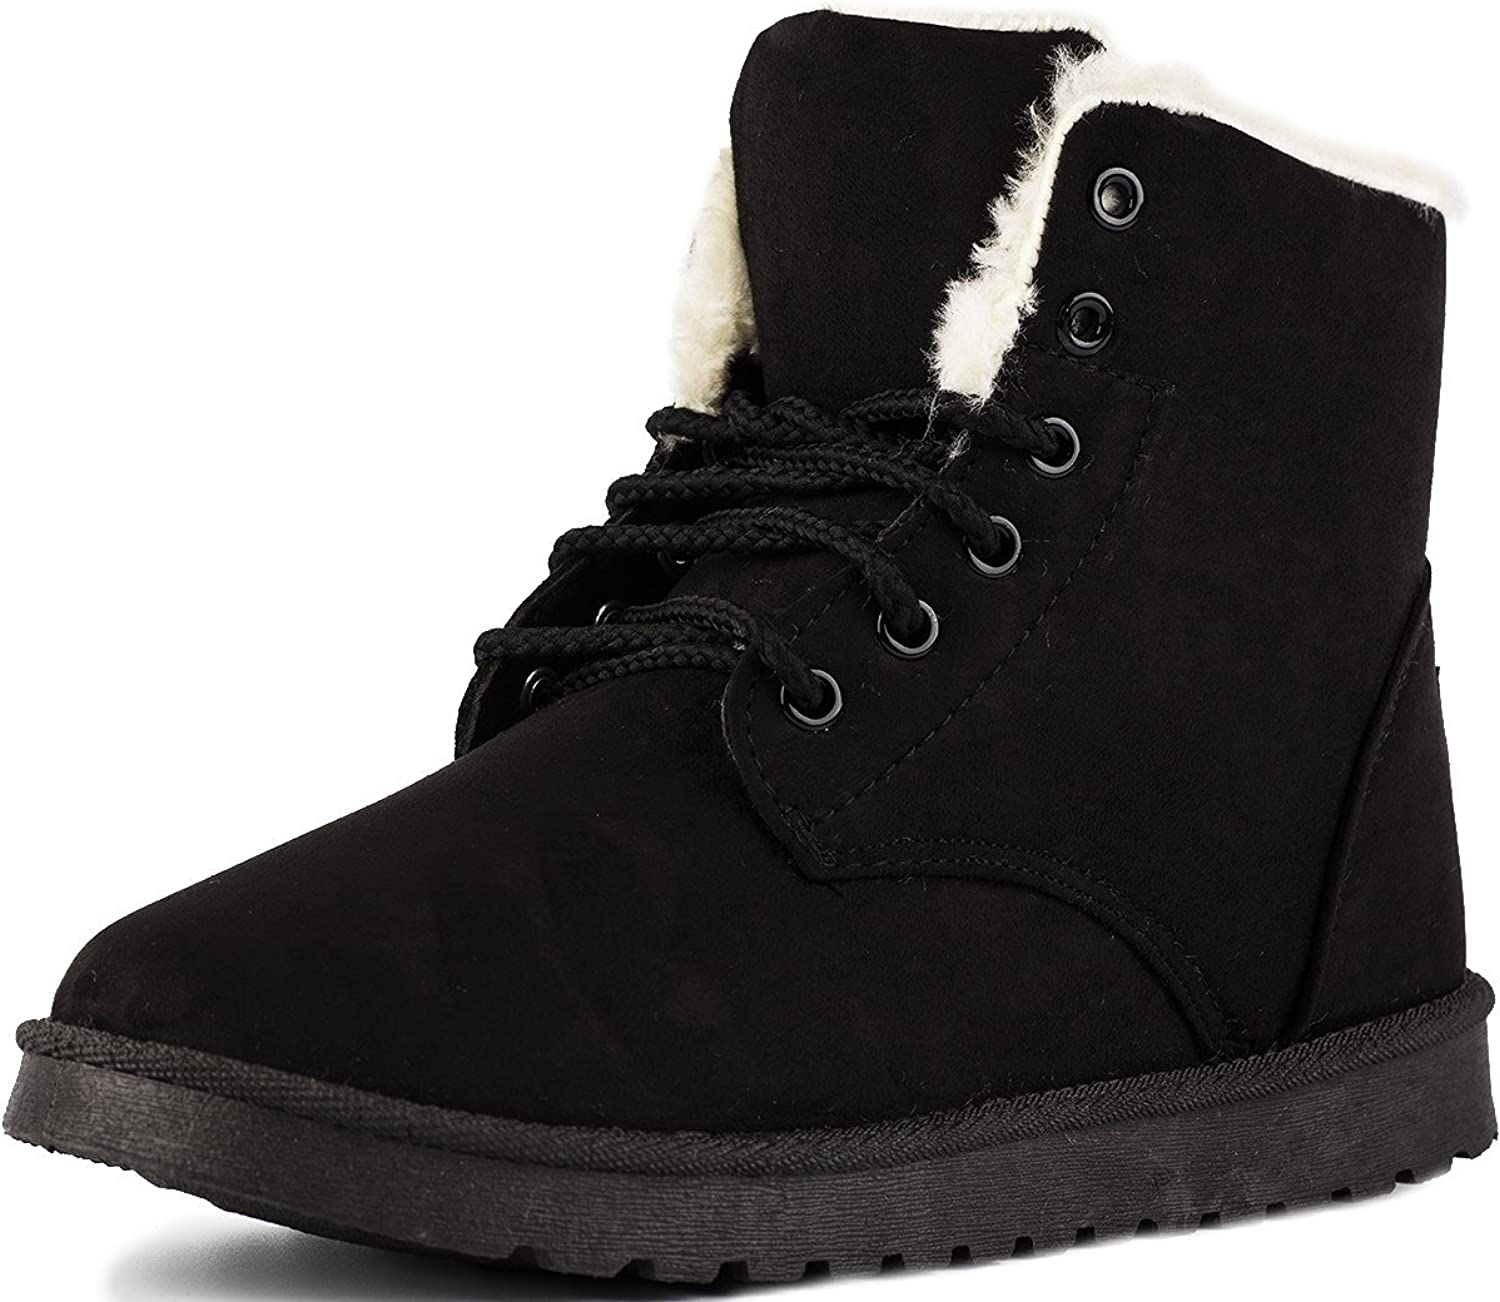 Keluomanduo Women's Winter Snow Boots Fur Liners Lace Up Short Basic Ankle Booties